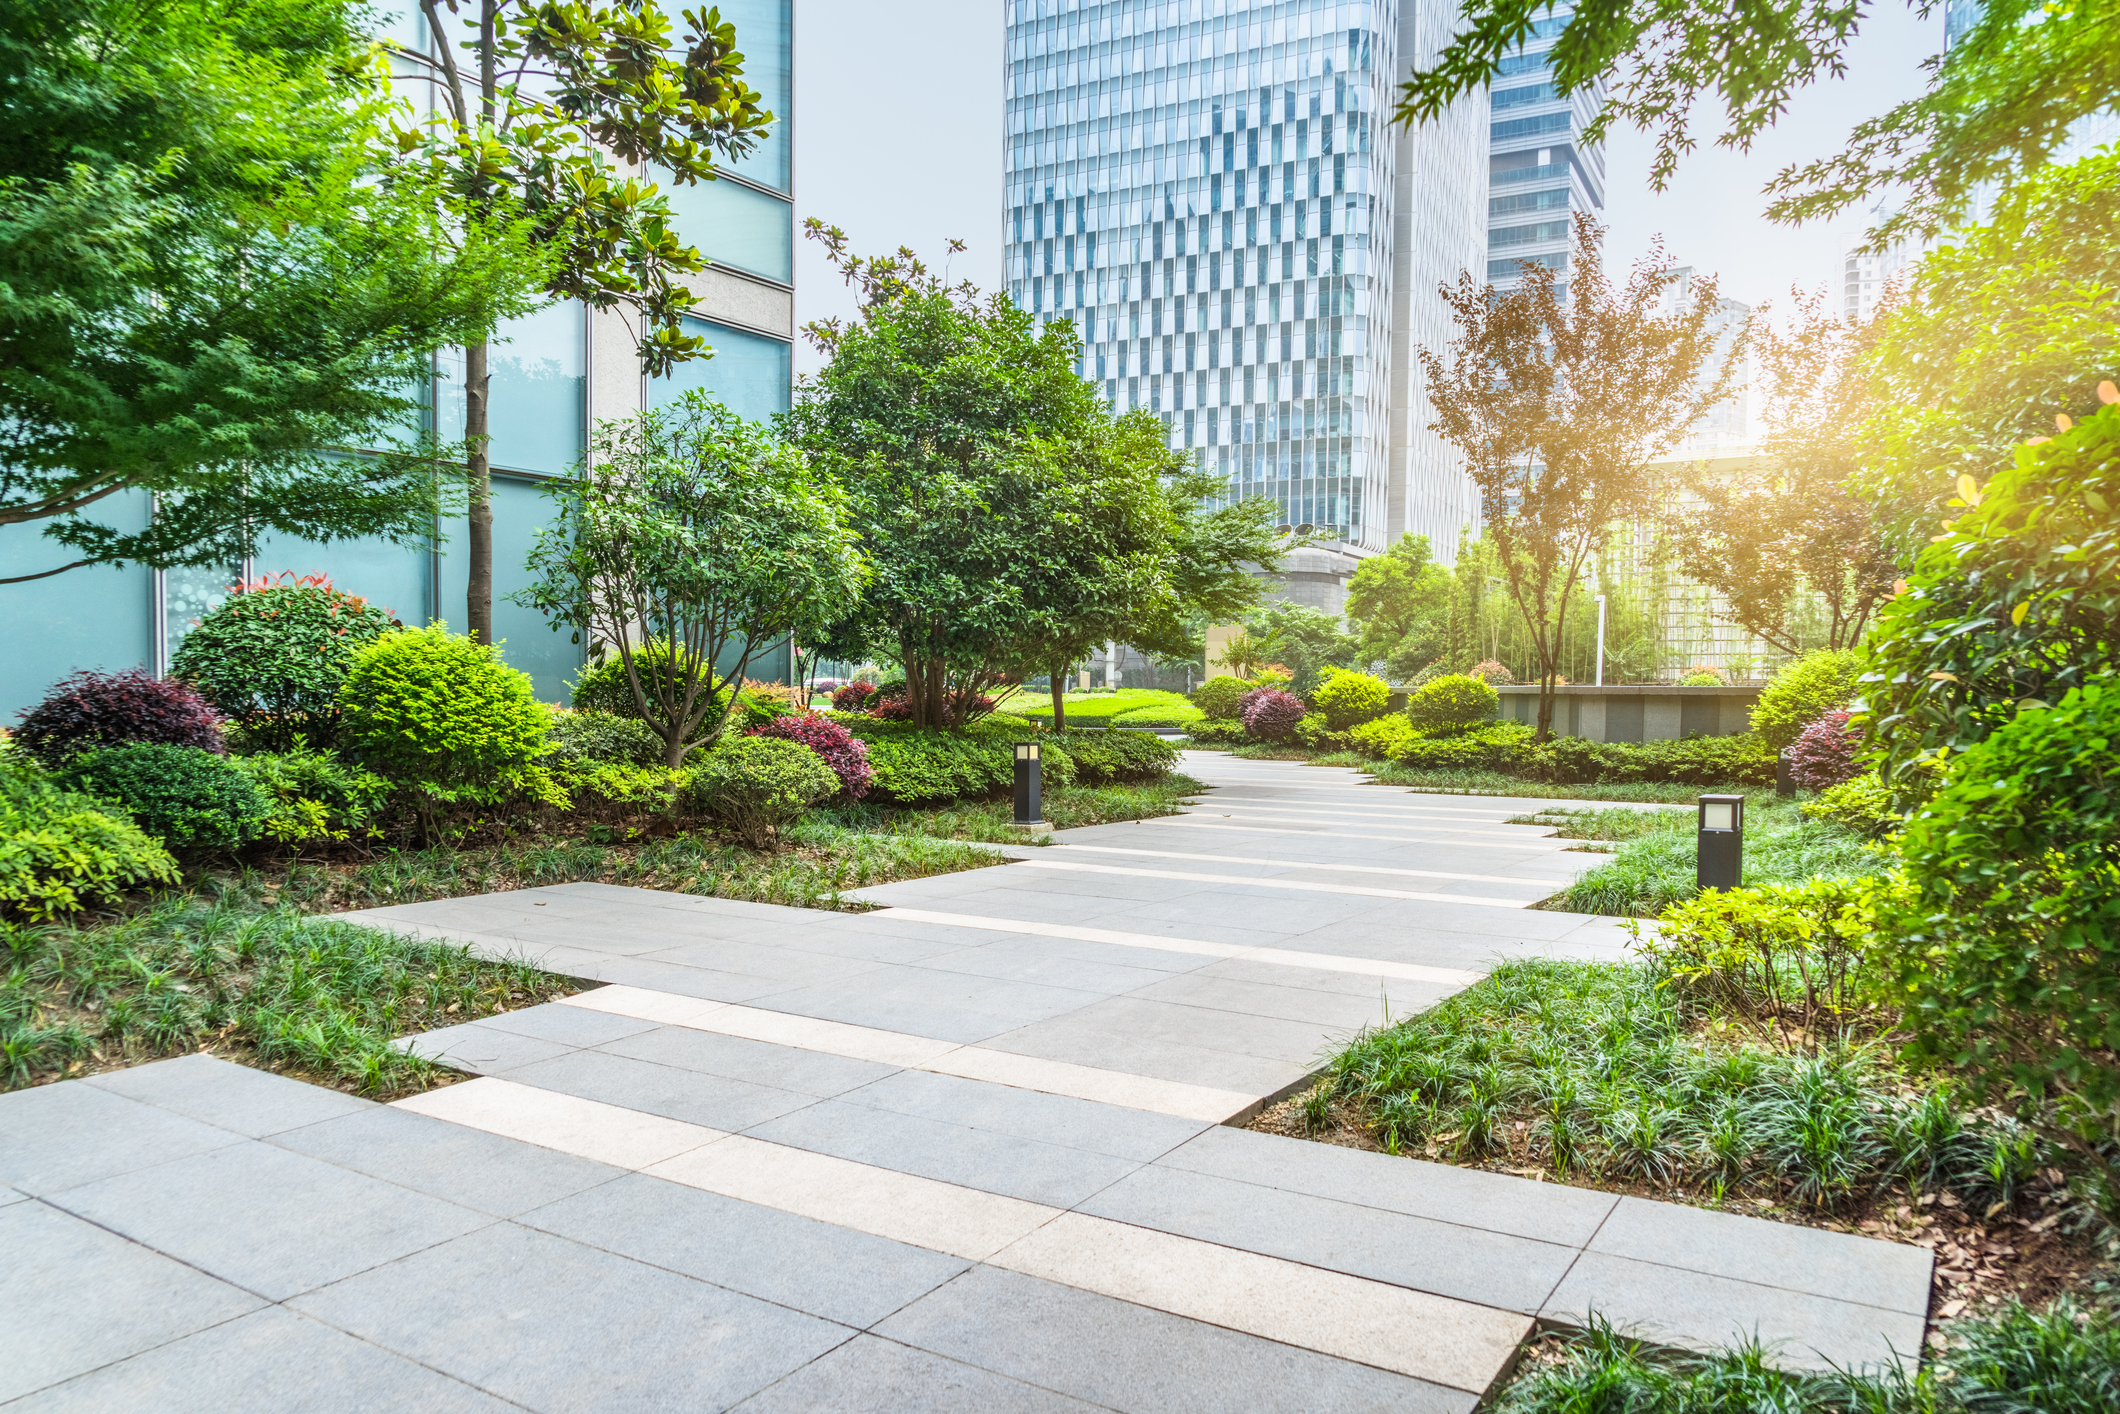 Office landscaping Indoor Landcrafters Fl The Ultimate Guide For Landscaping Your Office Building